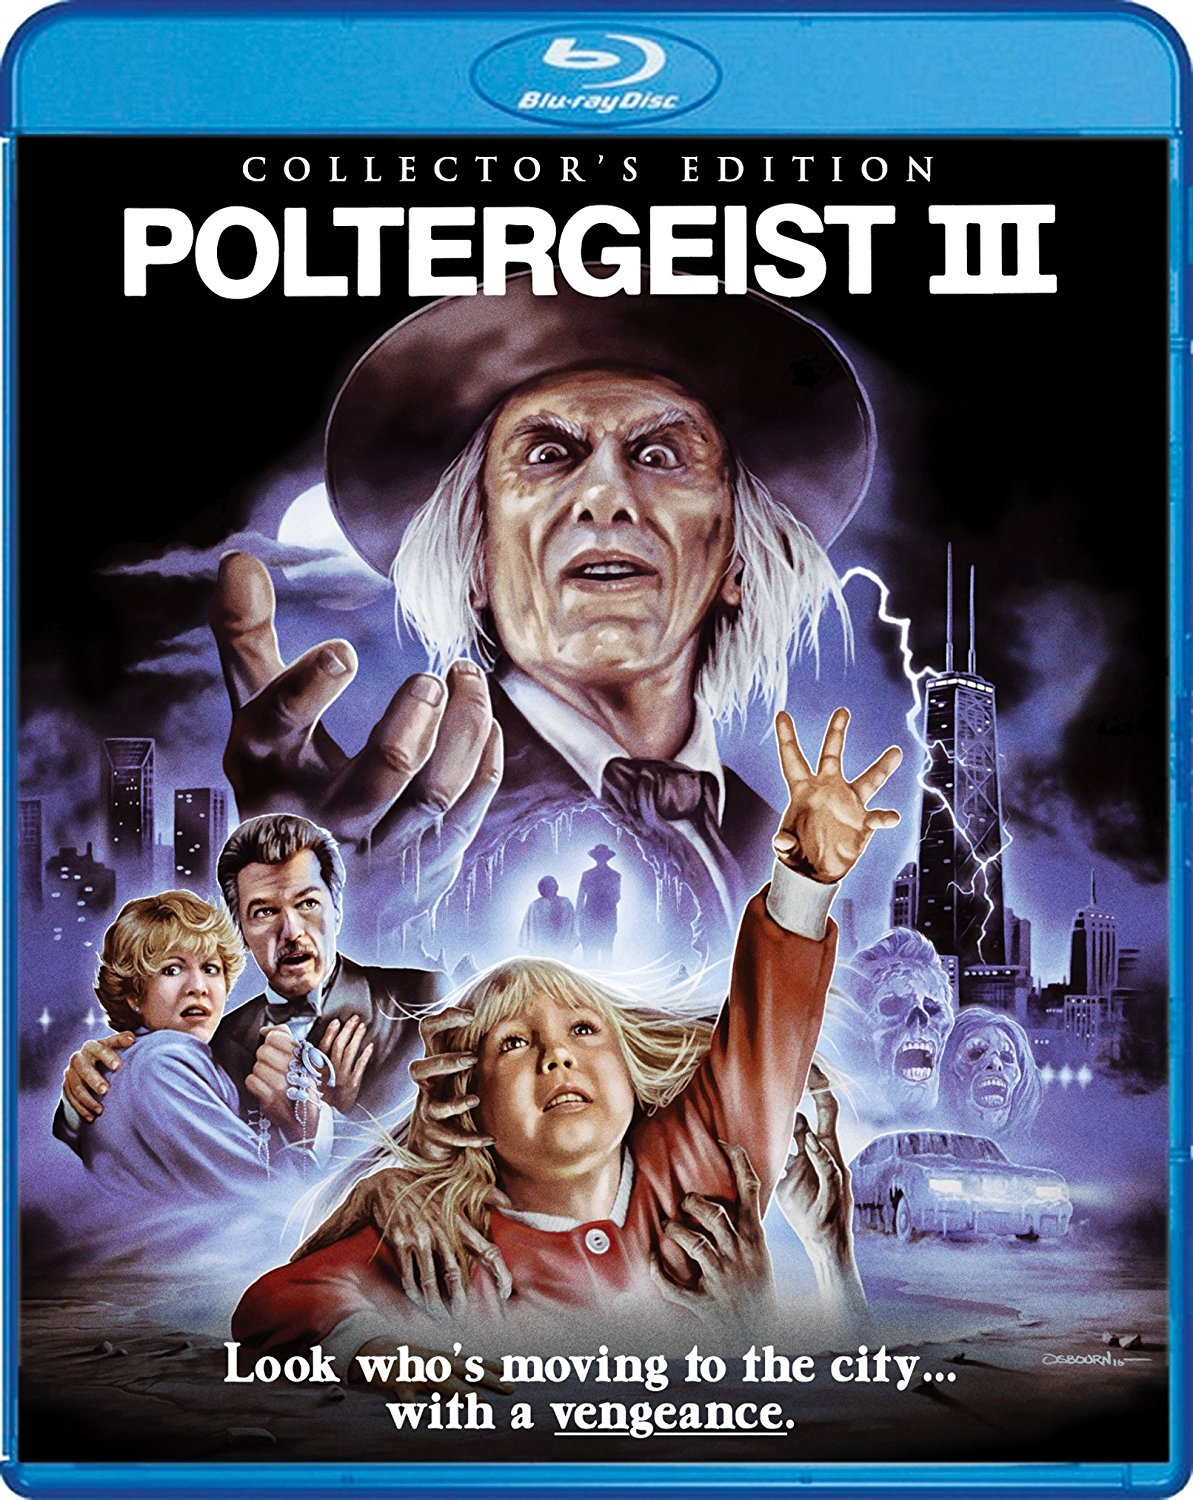 poltergeist 3 - Check Out This Fan Re-Edit of the Lost Ending to Poltergeist III